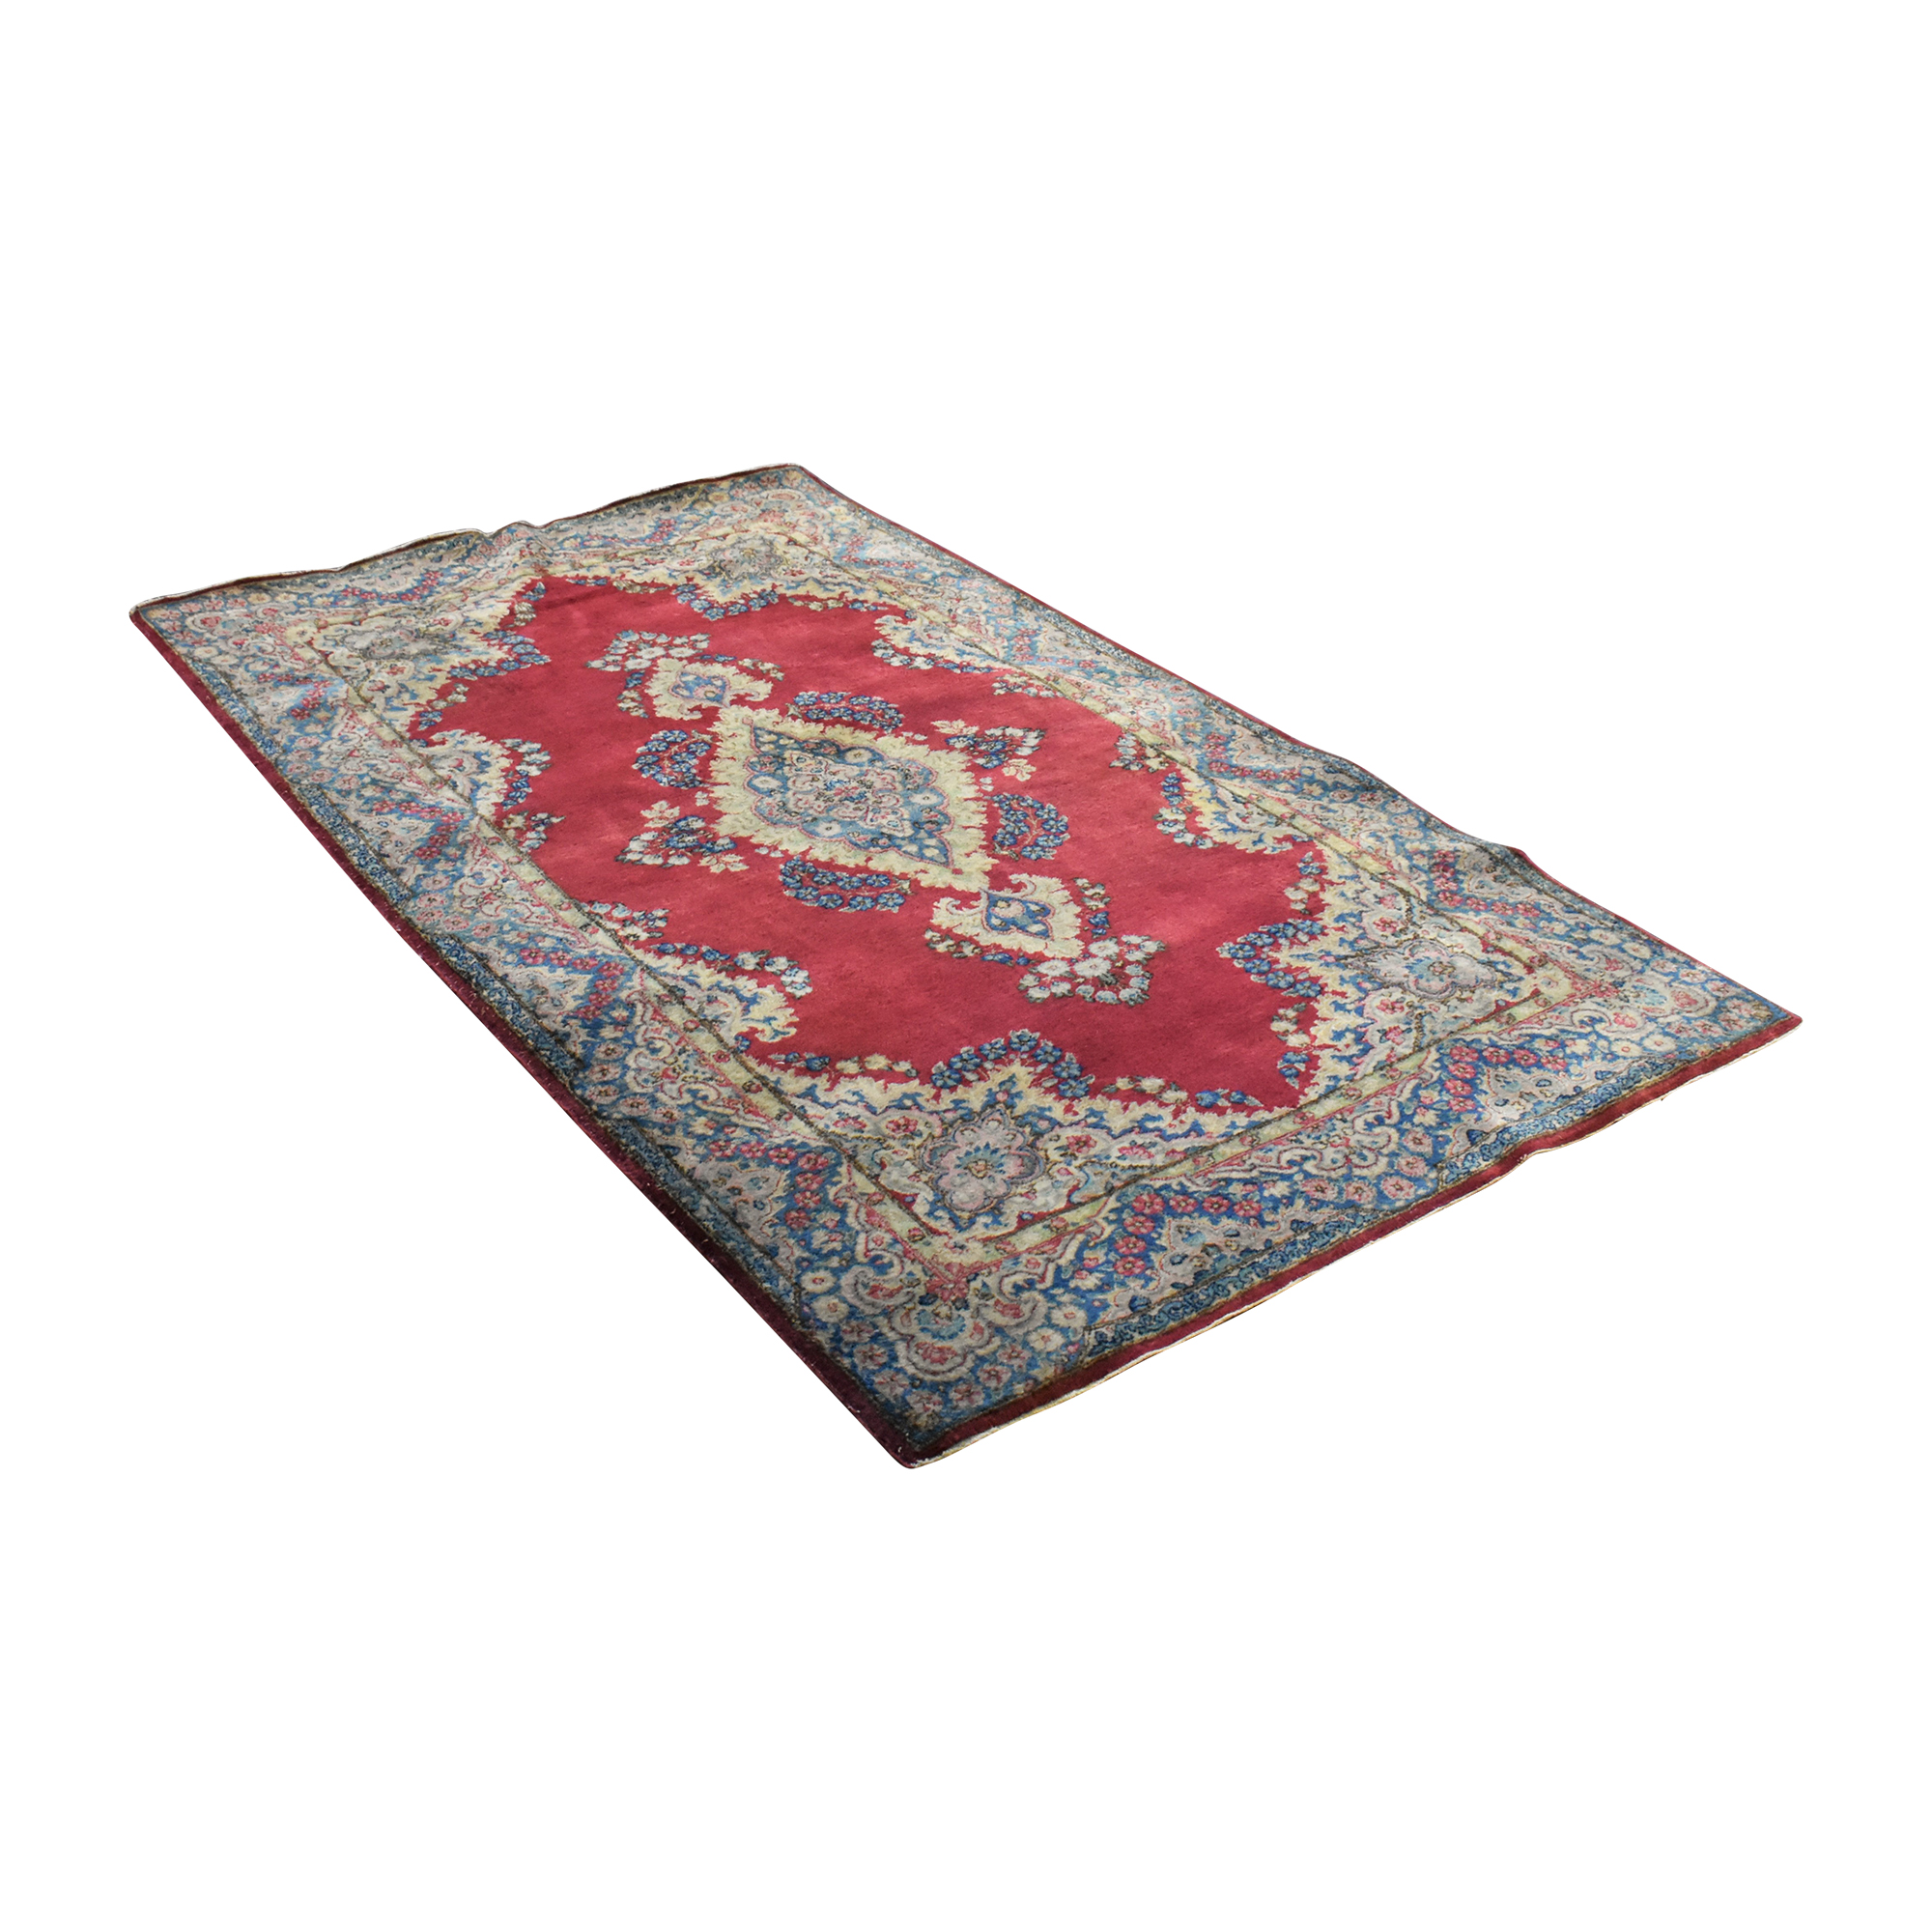 Patterned Persian-Style Area Rug on sale